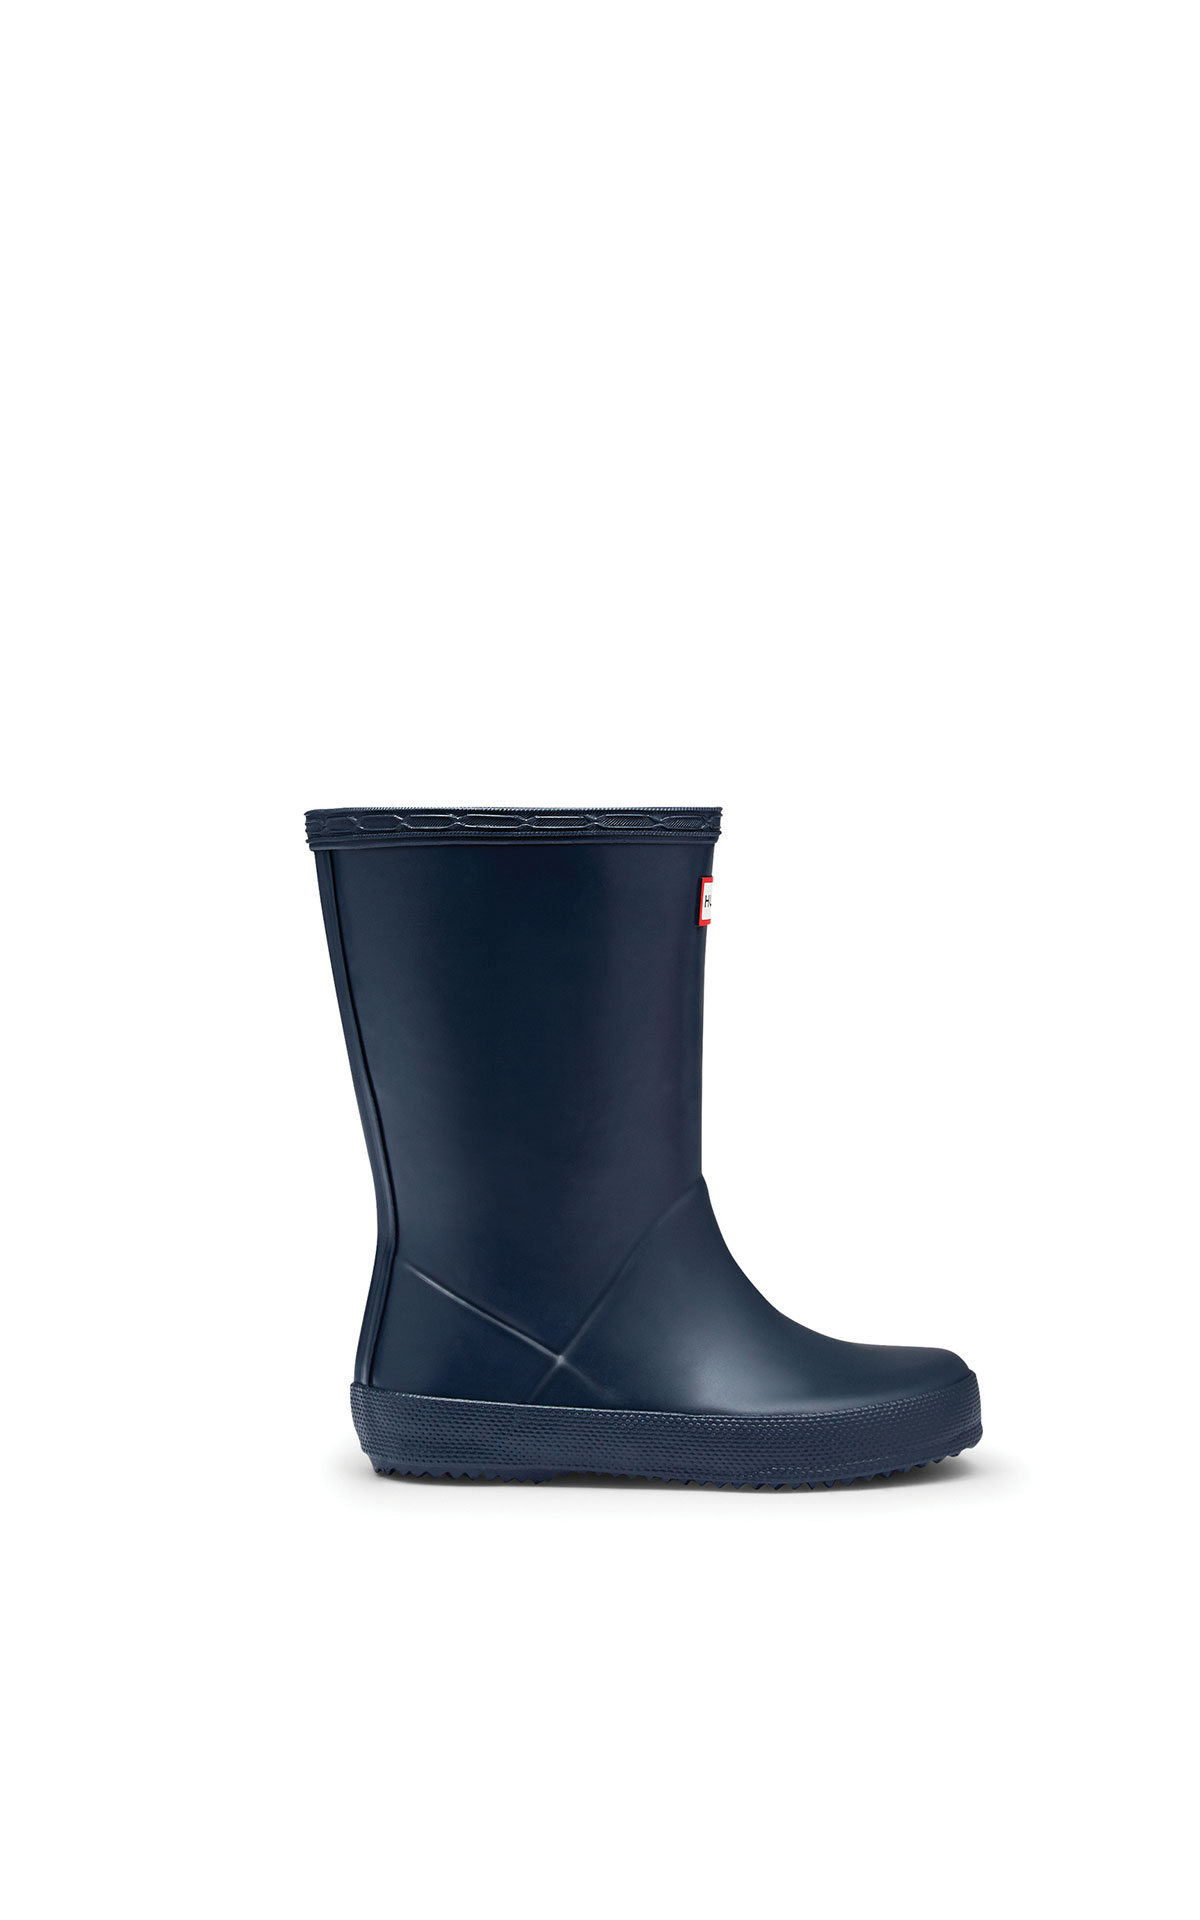 Hunter Kids first classic navy from Bicester Village